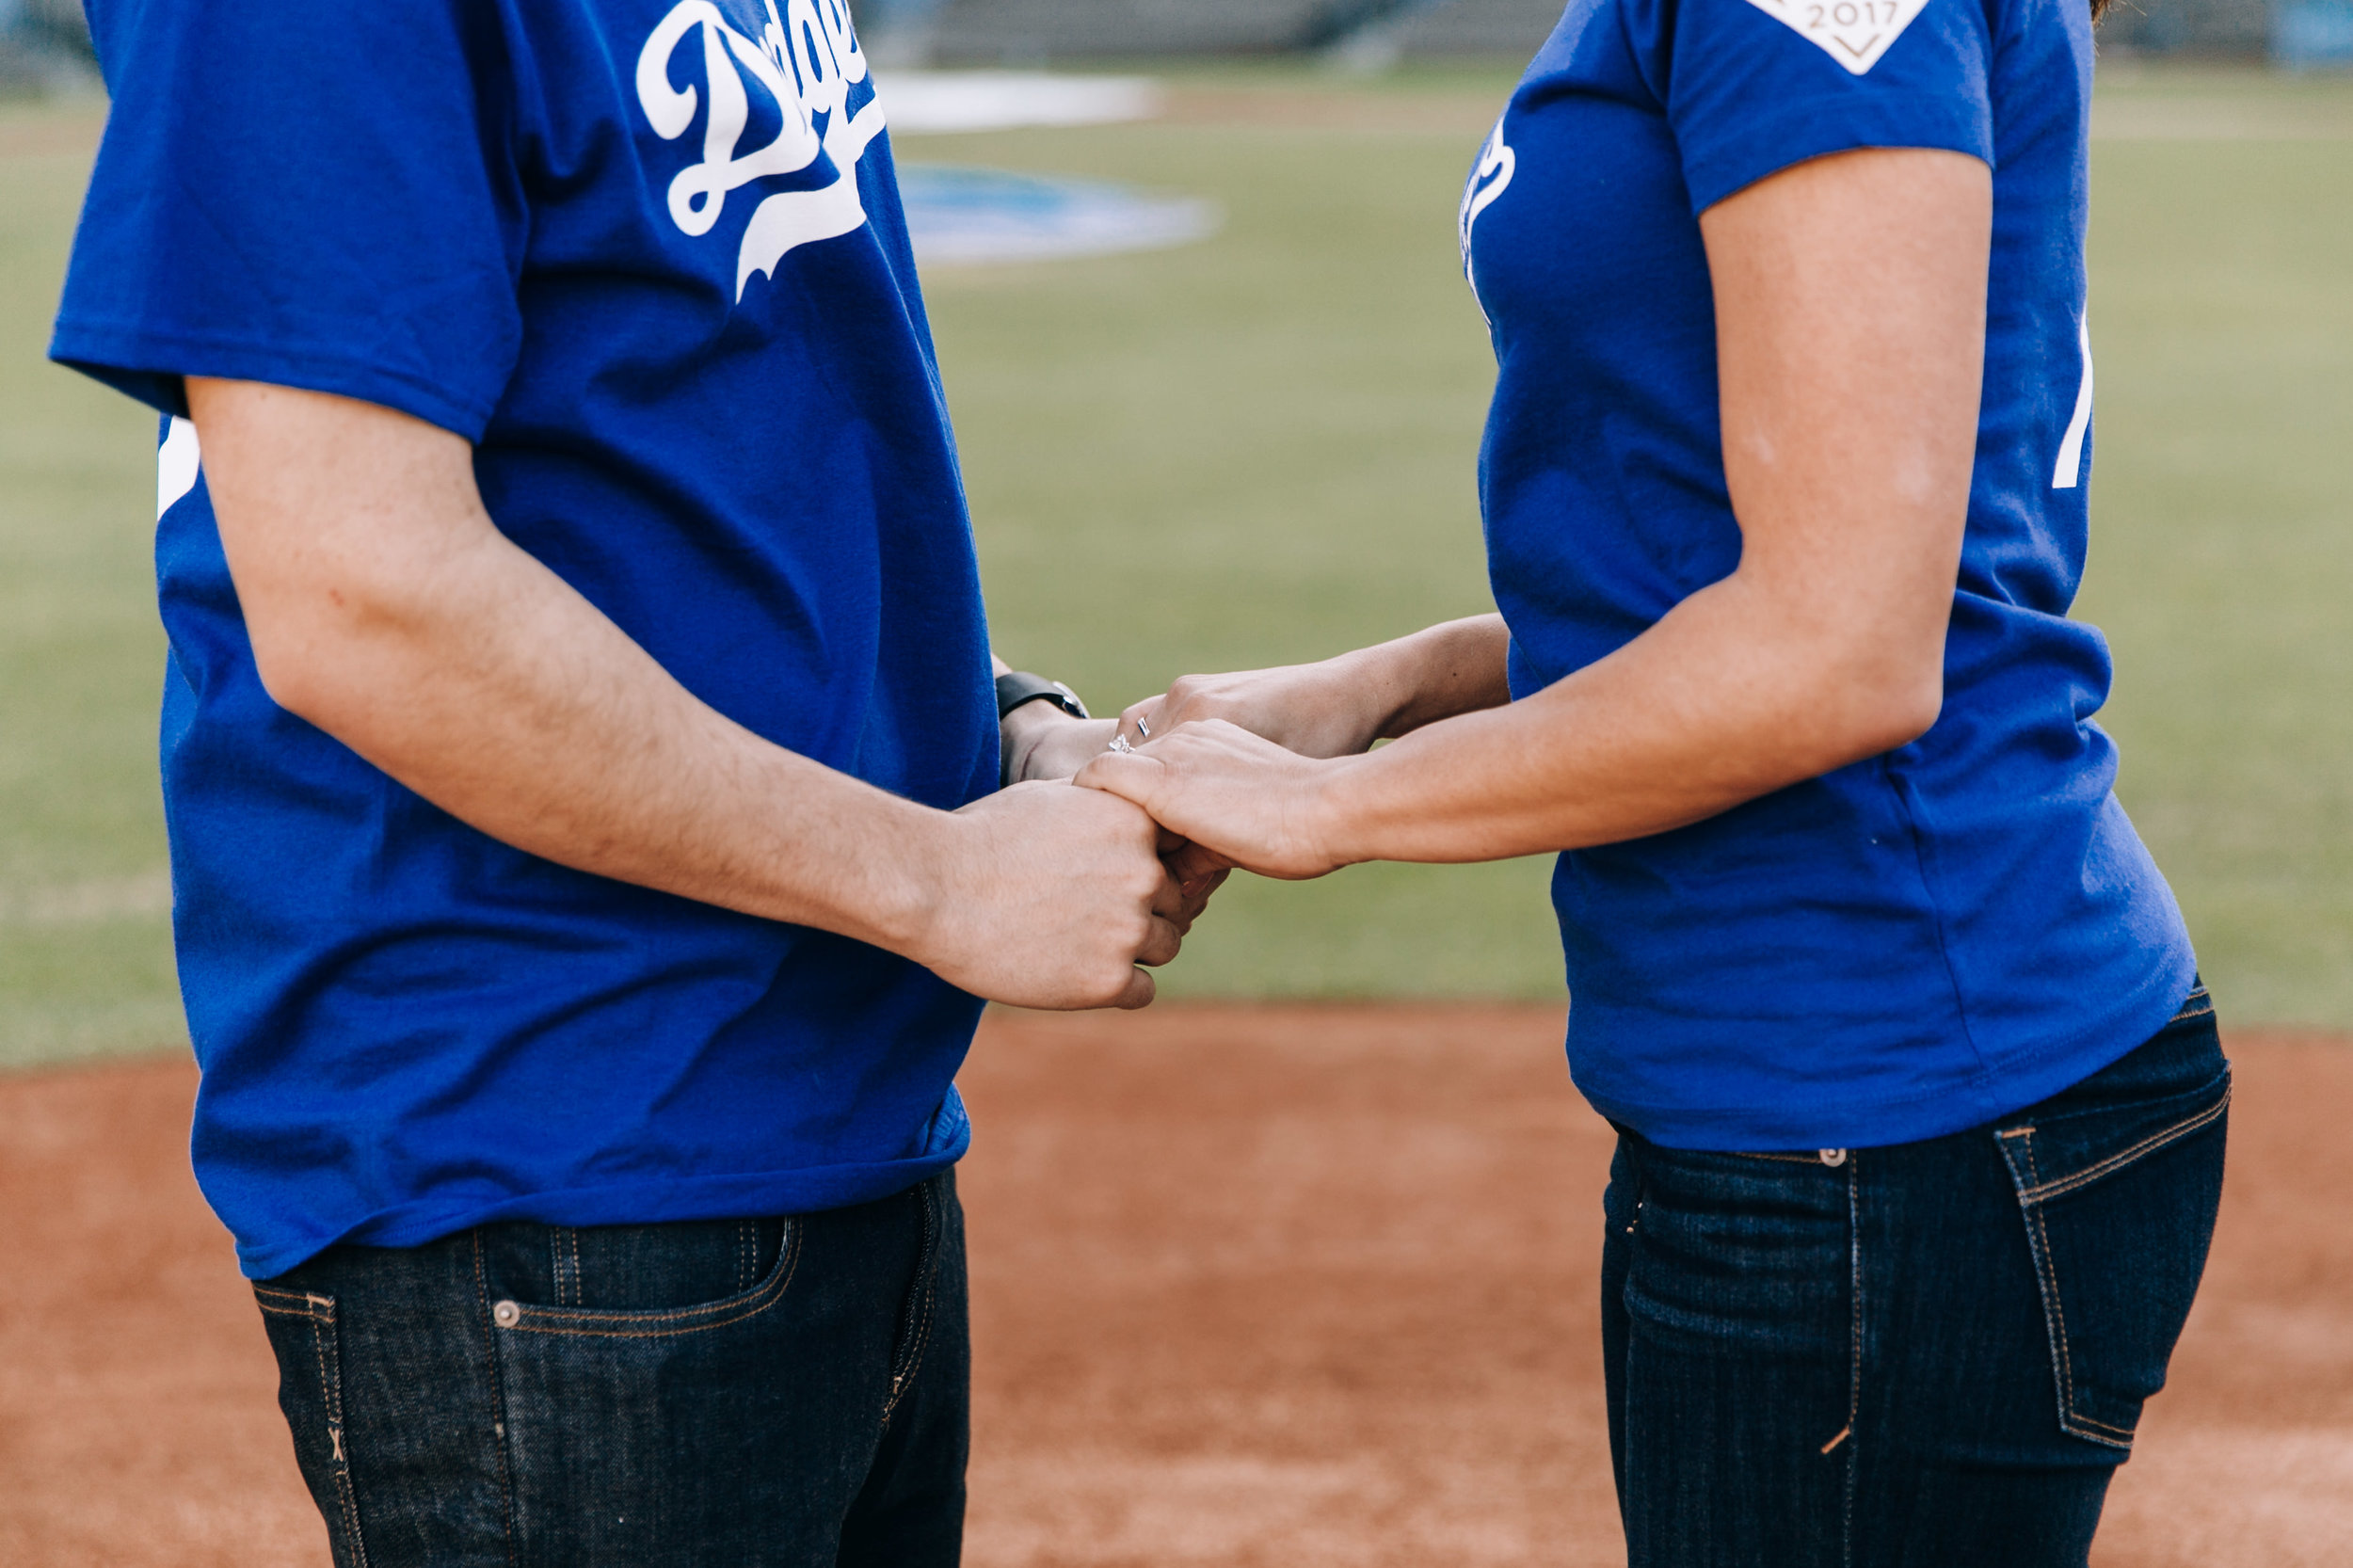 Los Angeles engagement photographer, Southern California engagement photographer, LA engagement photographer, Dodger Stadium engagement session, Dodgers, SoCal engagement photographer, LA Dodgers